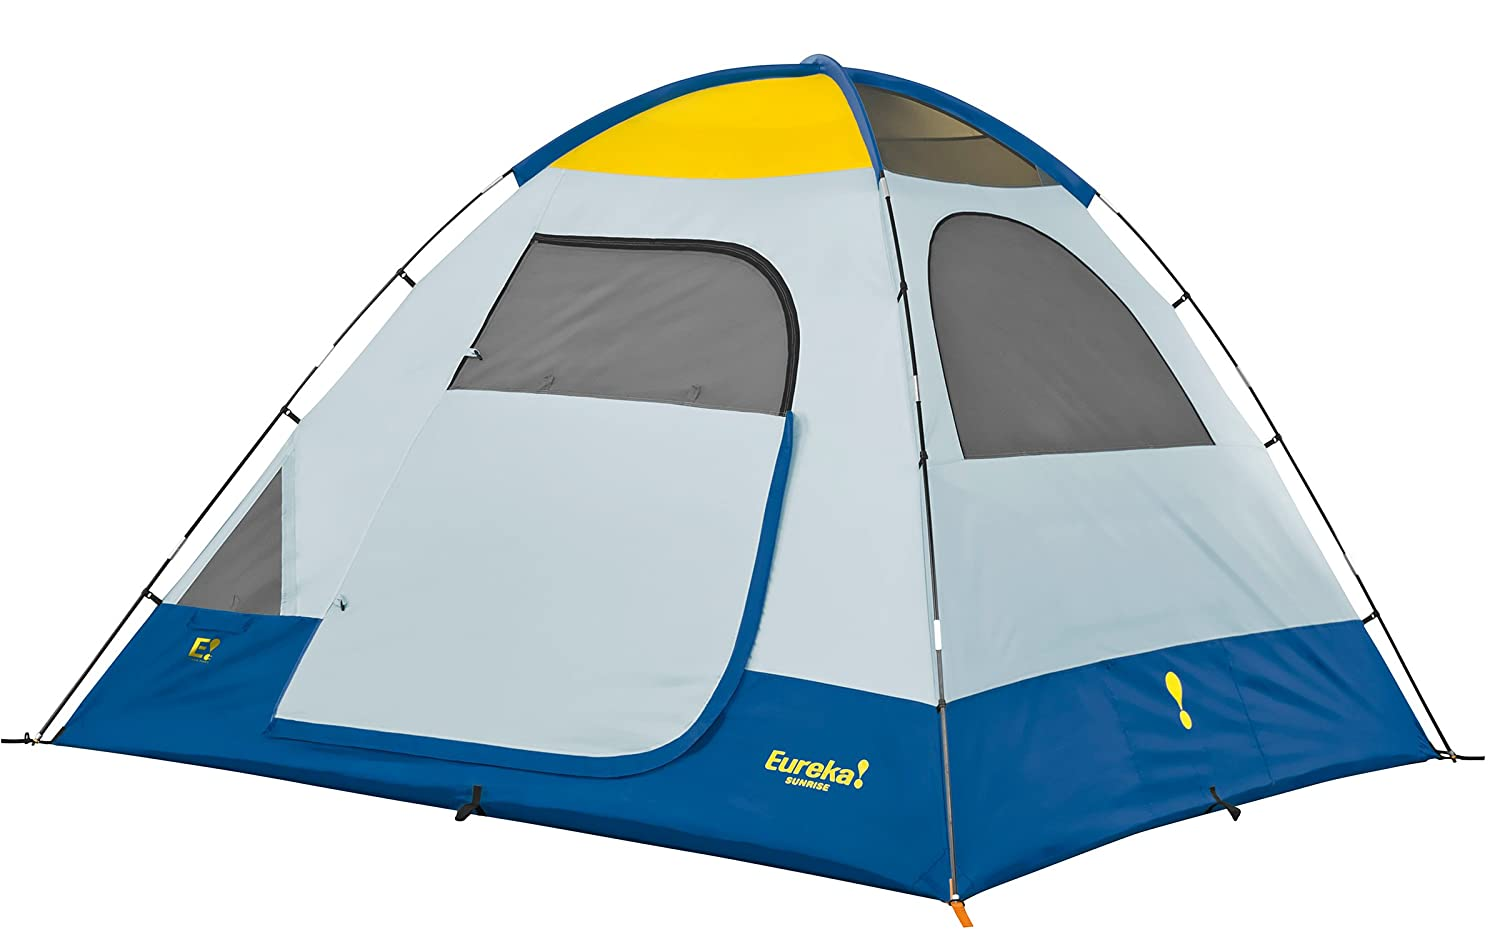 Amazon.com  Eureka Sunrise 4 - 4 Person Tent  Backpacking Tents  Sports u0026 Outdoors  sc 1 st  Amazon.com : eureka equinox tent - memphite.com